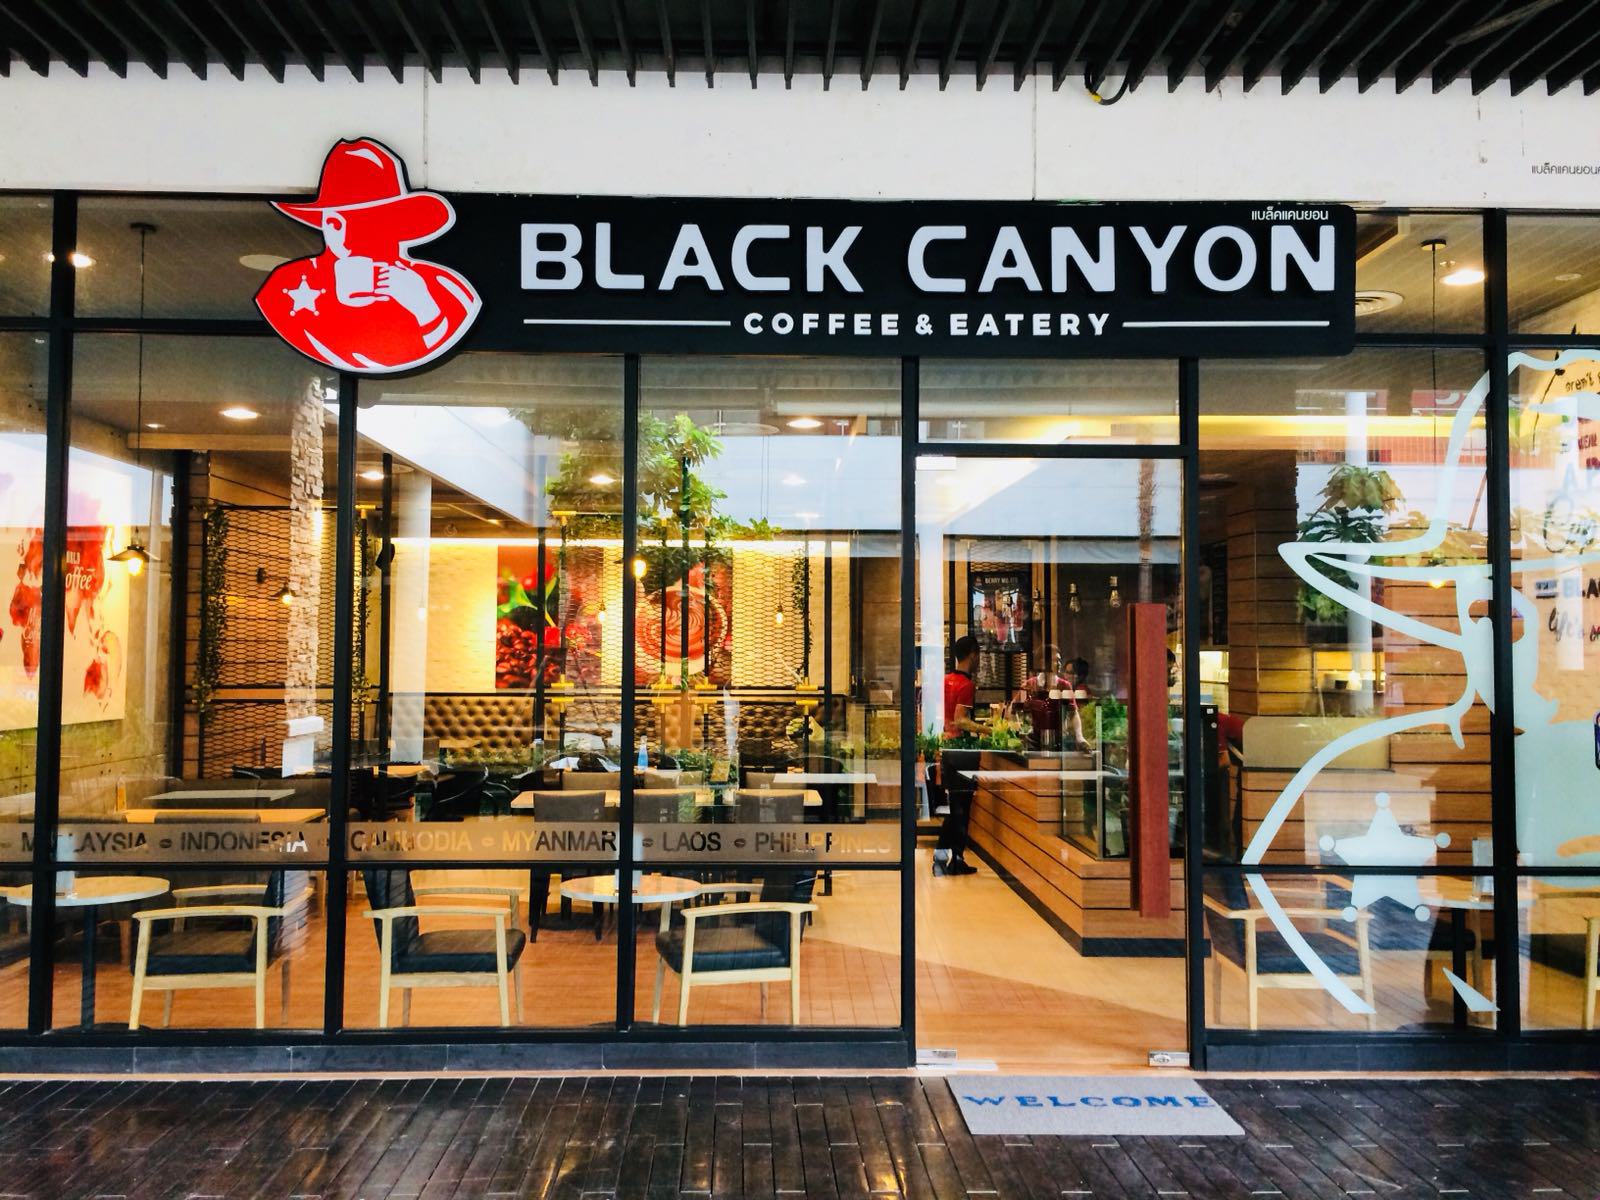 Black Canyon Coffee & Eatery